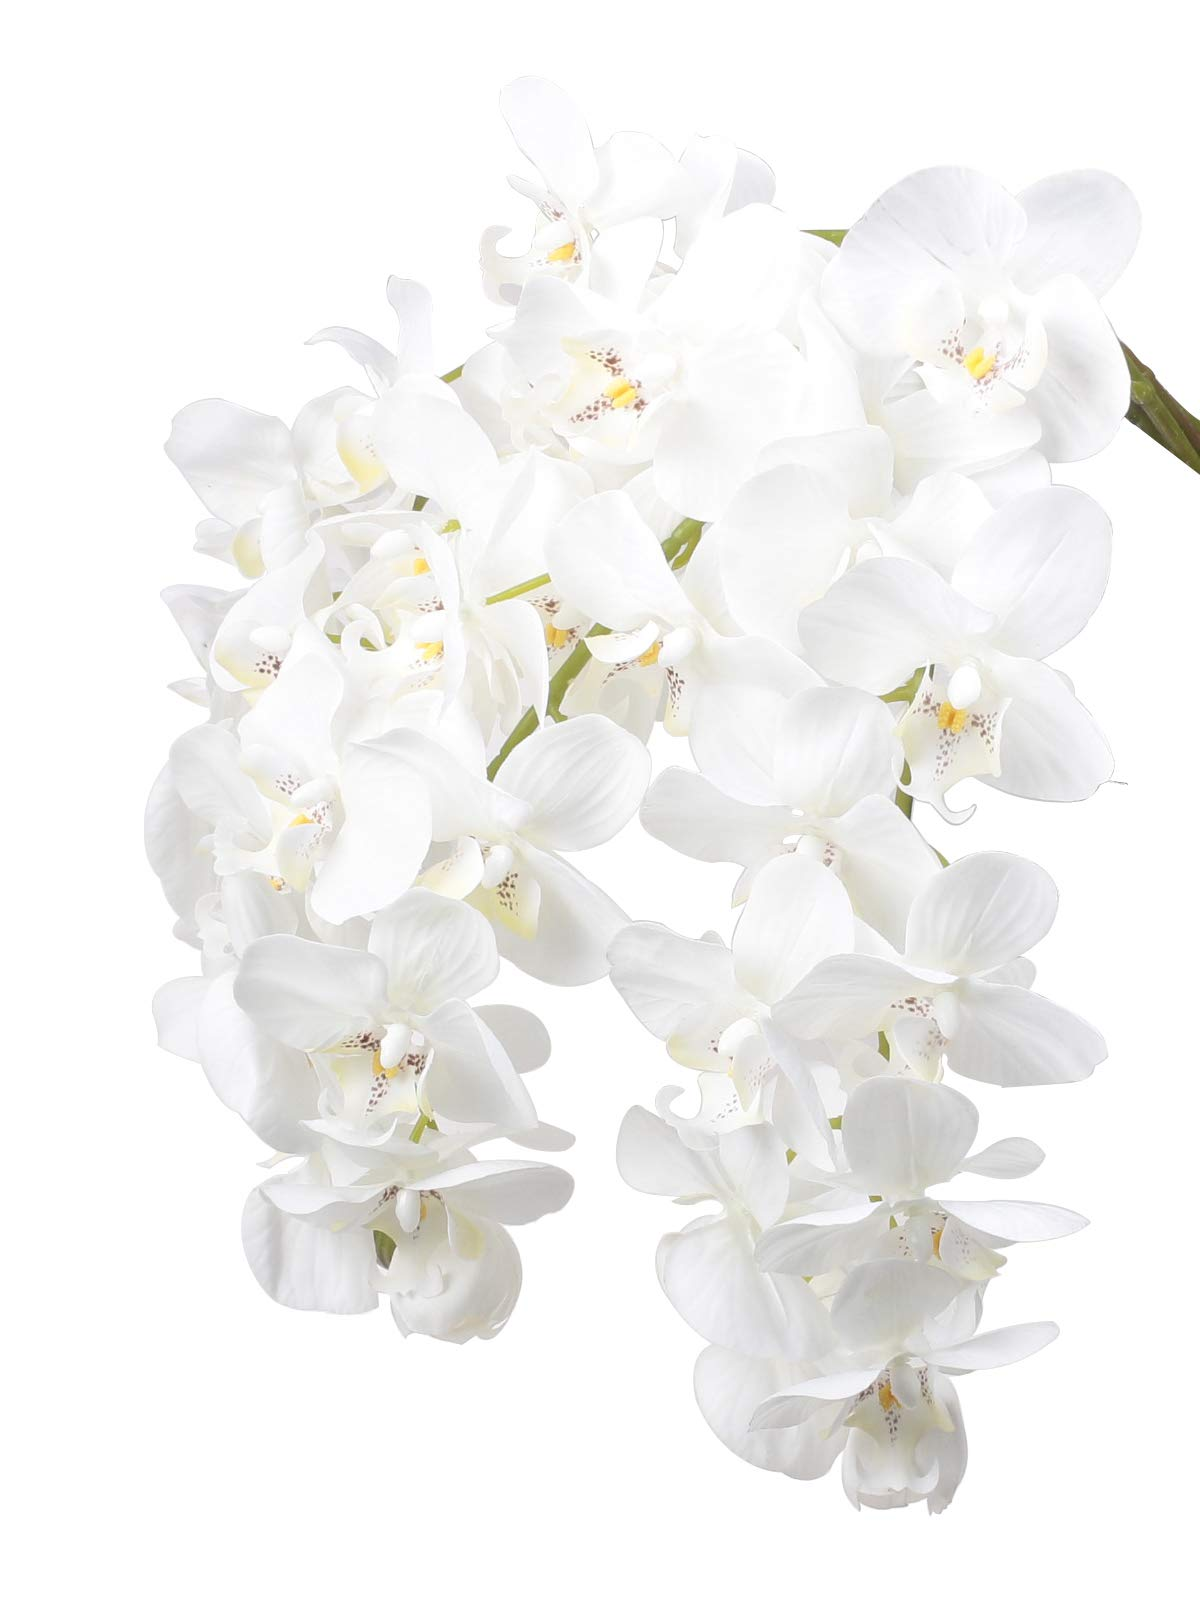 """Ivalue 28"""" Artificial Orchid Flower Stem Plants Pack of 4 Real Touch White Simulation Butterfly Phalaenopsis Flowers for Home Wedding Party Decoration (4, White Orchid)"""